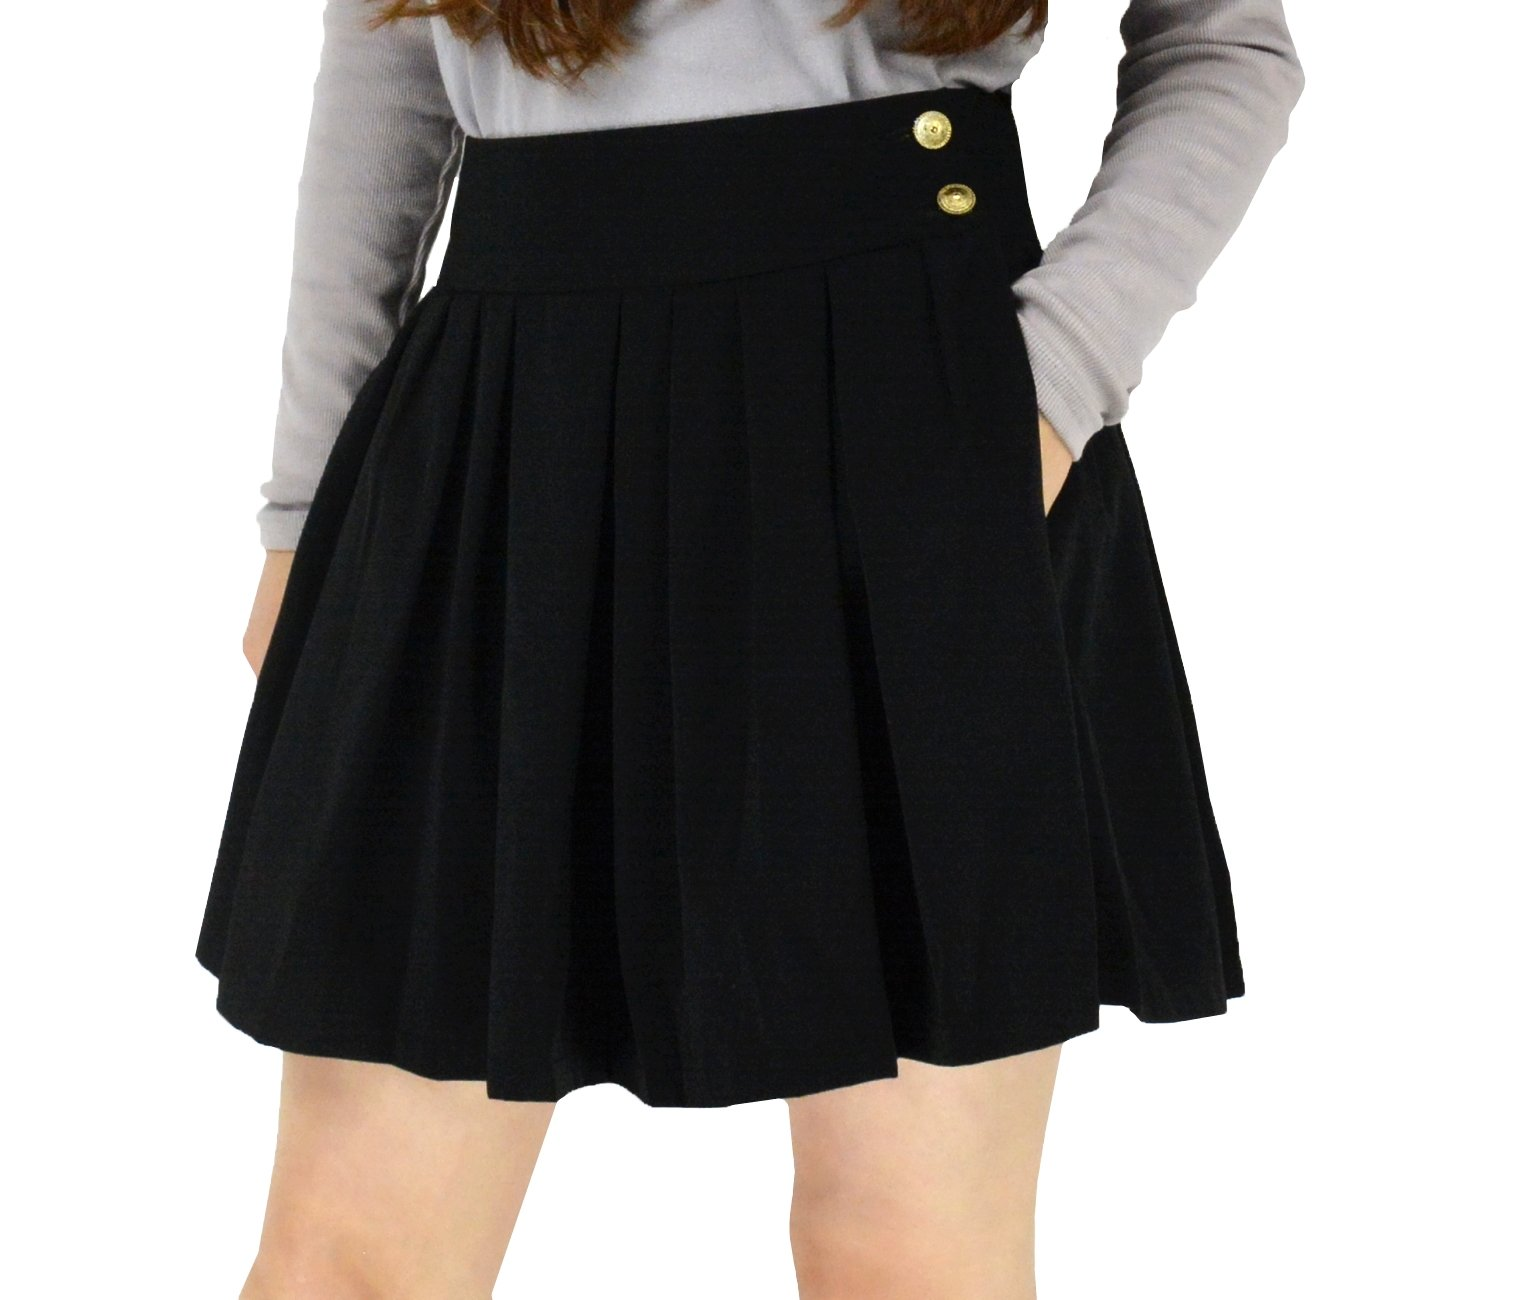 YSJ Women's High Waisted Pleated Mini A Line Skater Skirts with Pockets (L, Black)